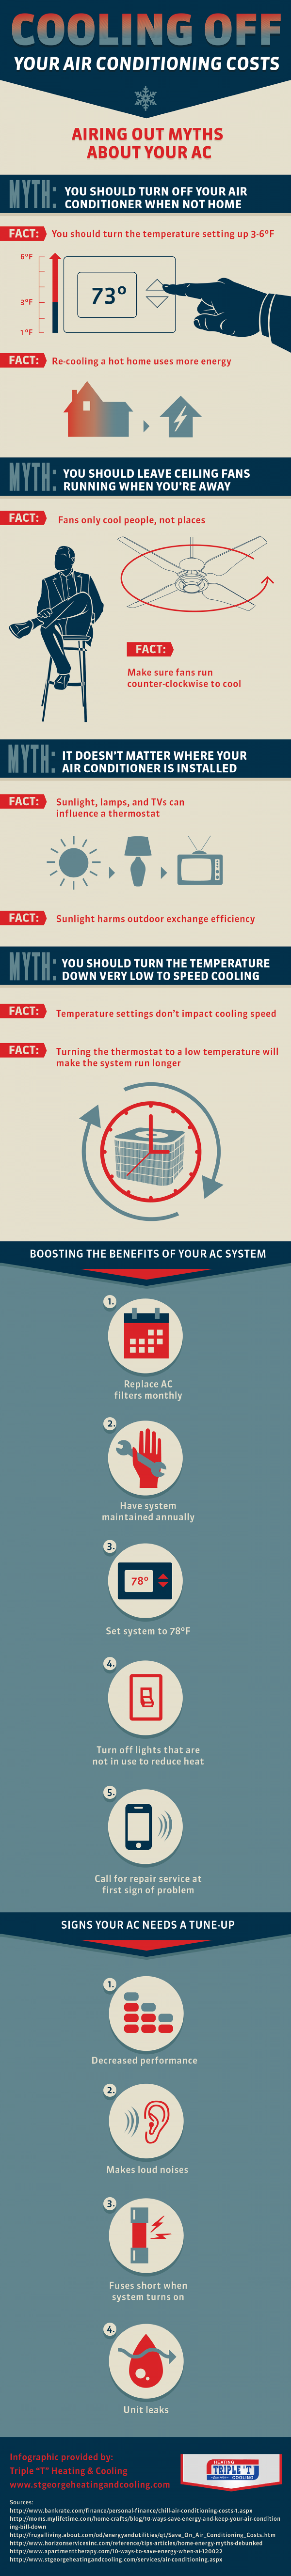 Cooling Off Your Air Conditioning Costs Infographic